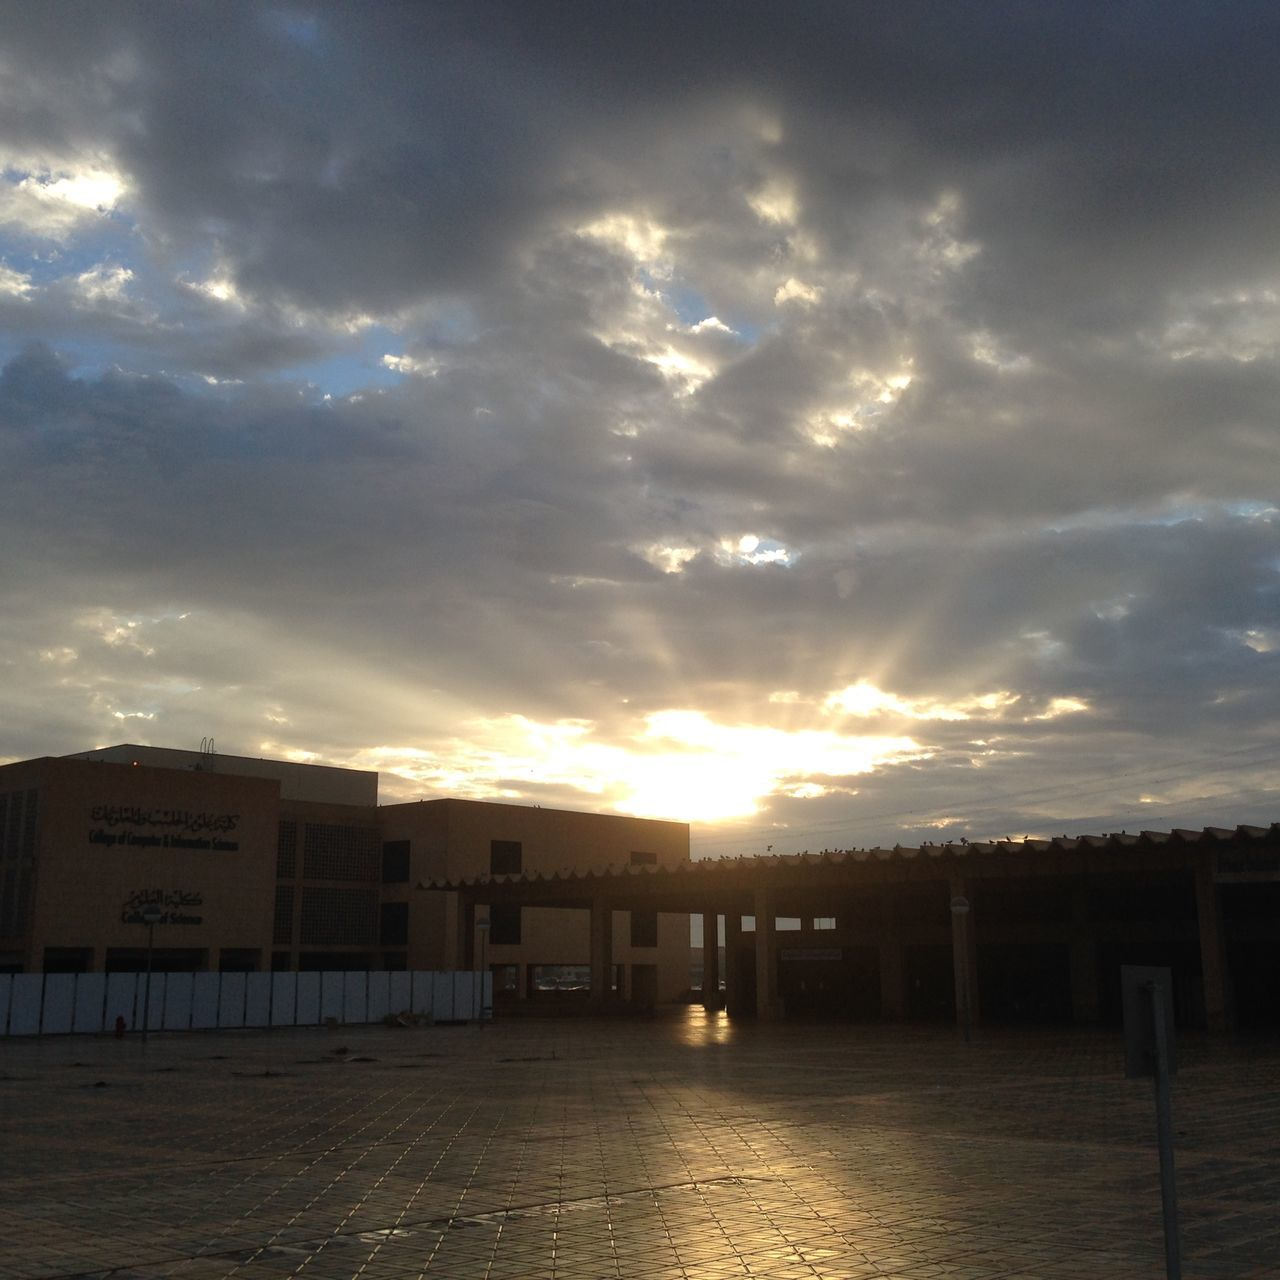 sky, built structure, architecture, sunset, no people, cloud - sky, outdoors, building exterior, day